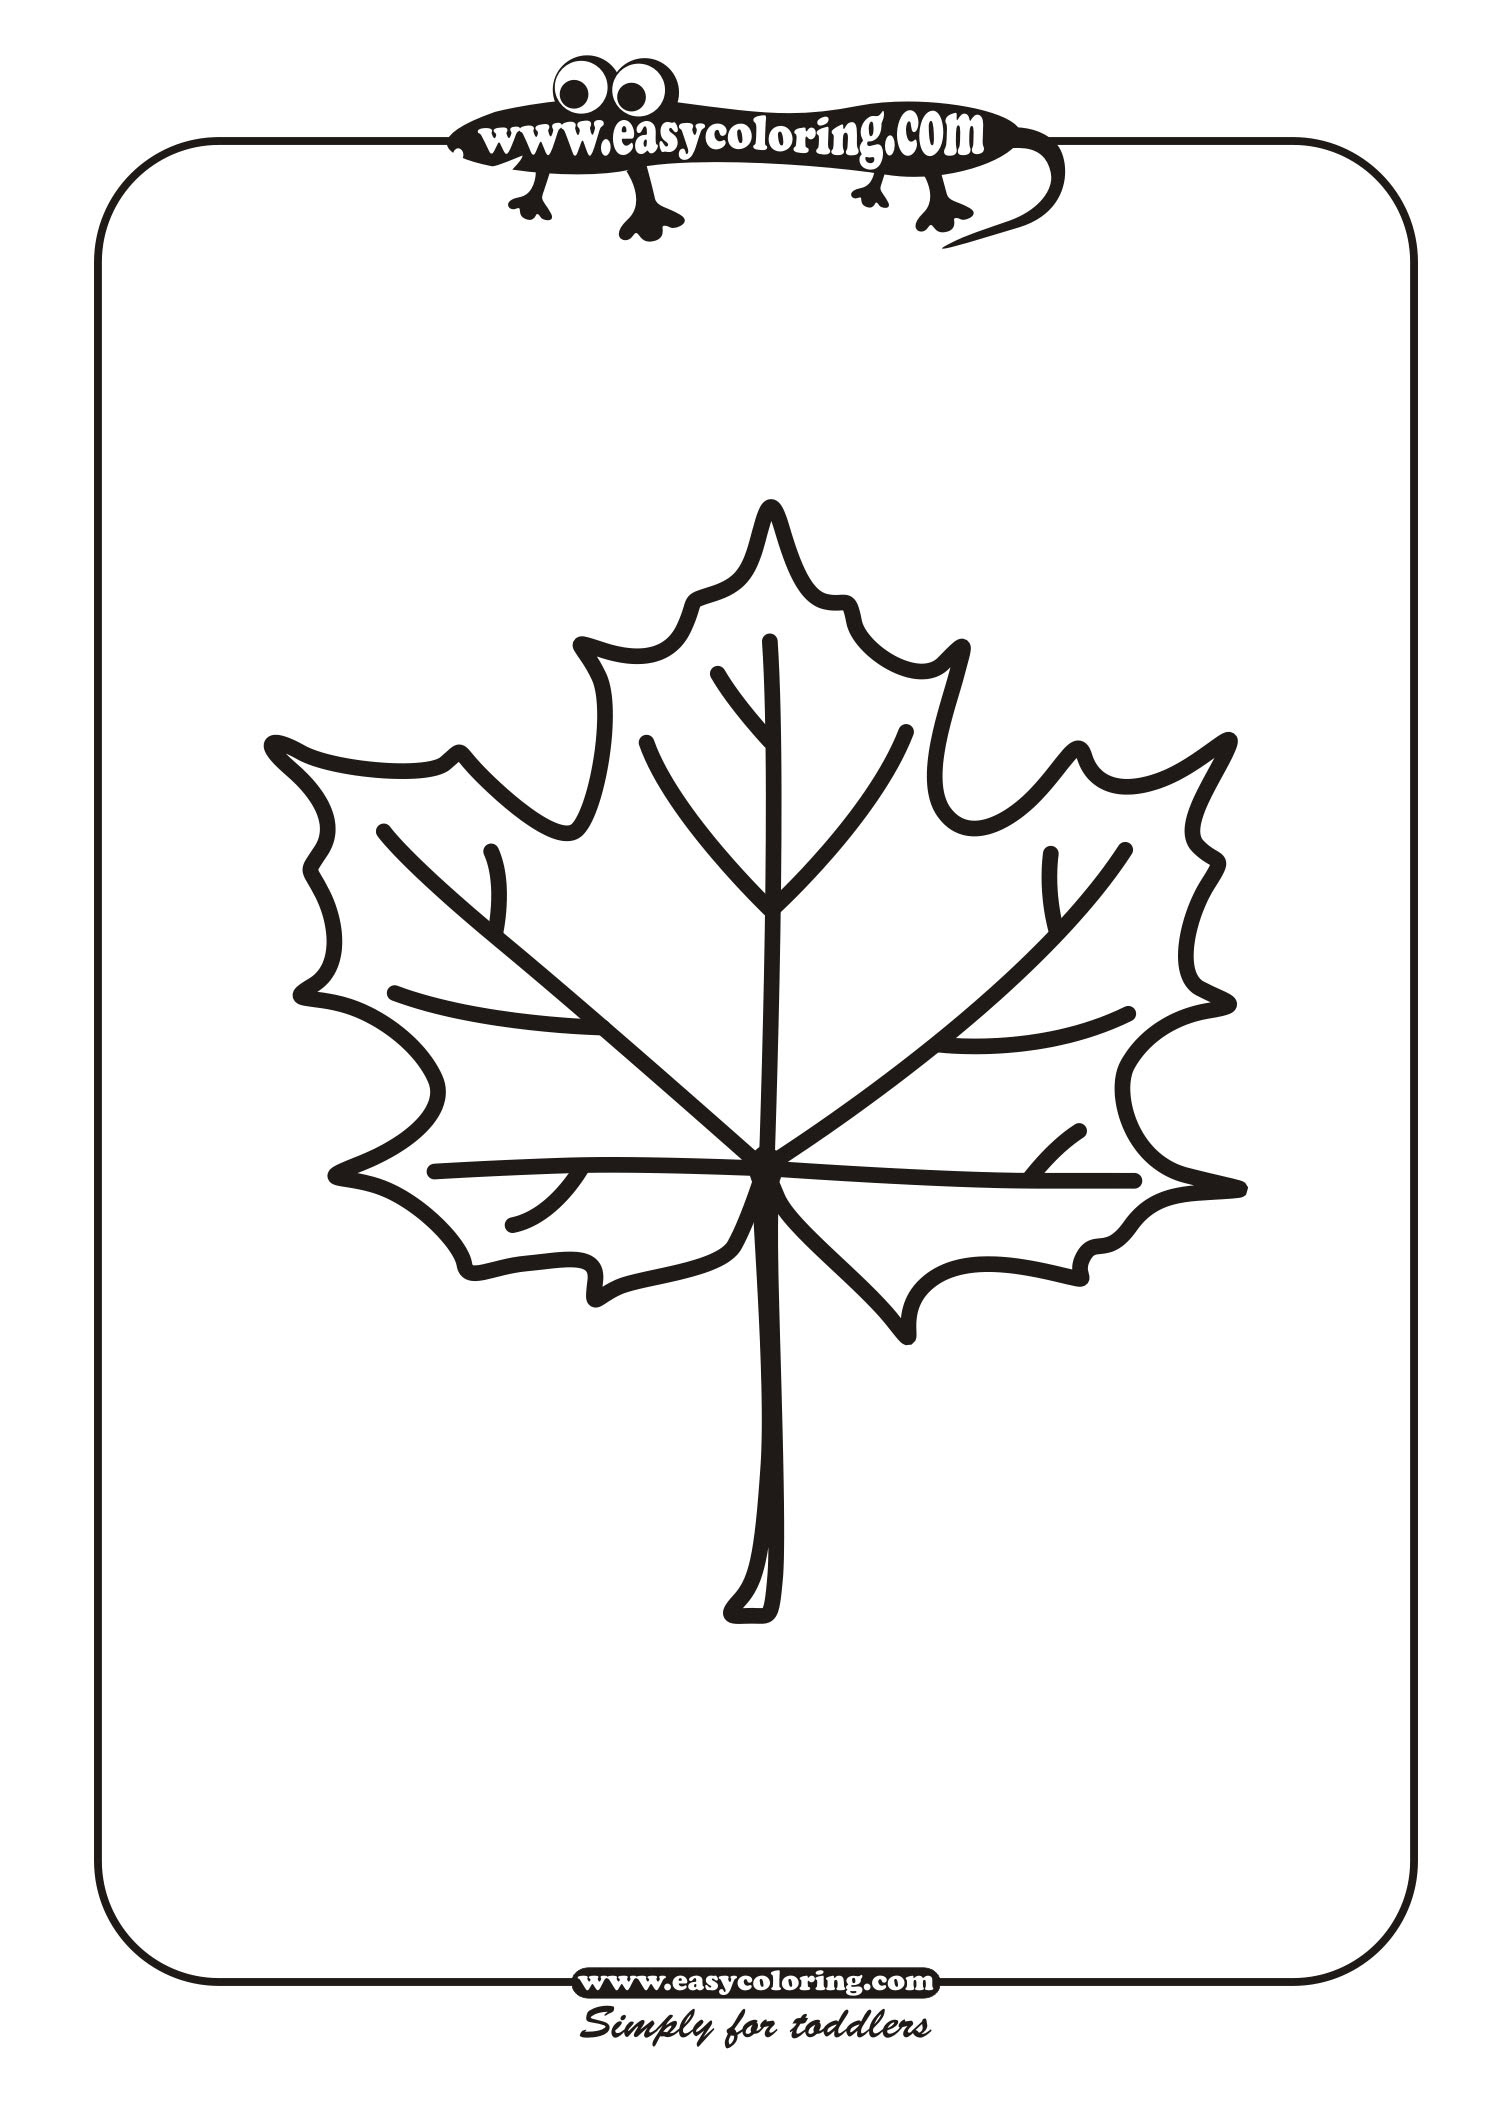 Leaf One - Simple leafs | Easy coloring pages for toddlers